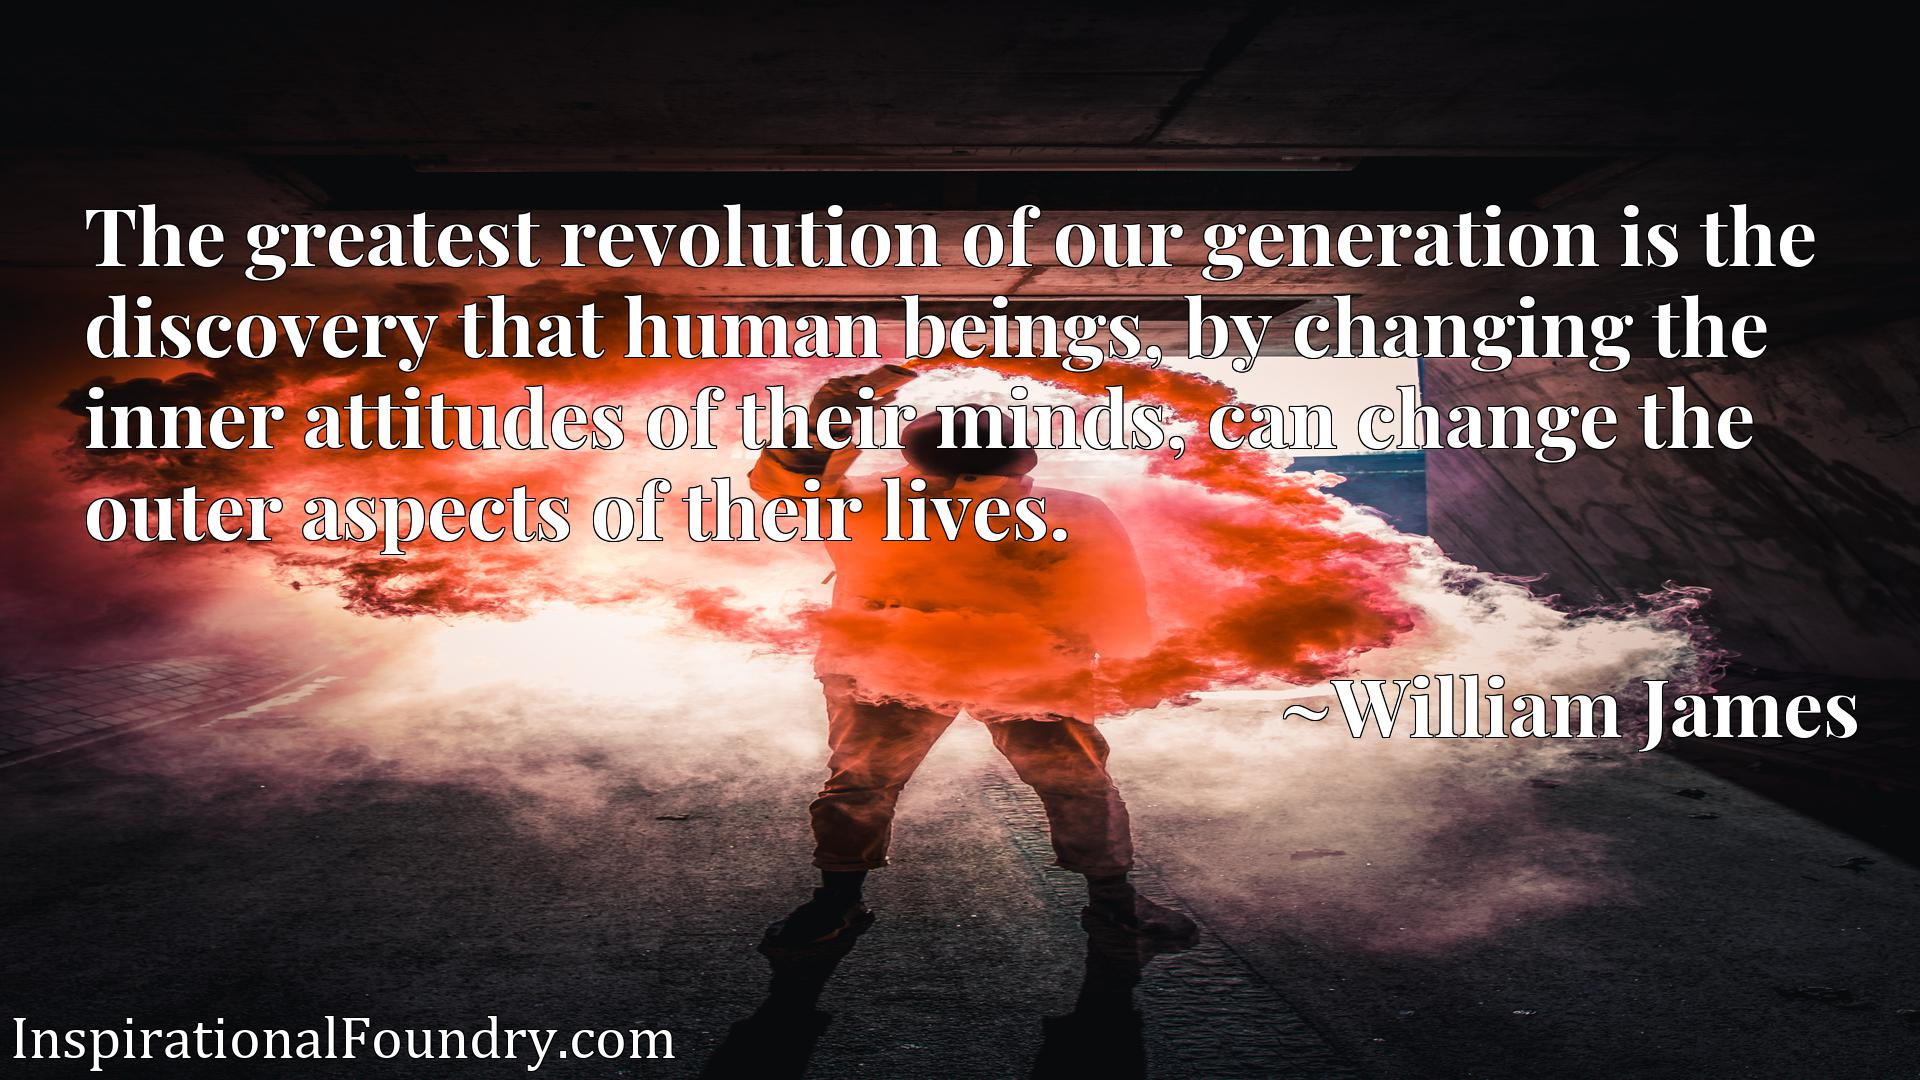 The greatest revolution of our generation is the discovery that human beings, by changing the inner attitudes of their minds, can change the outer aspects of their lives.